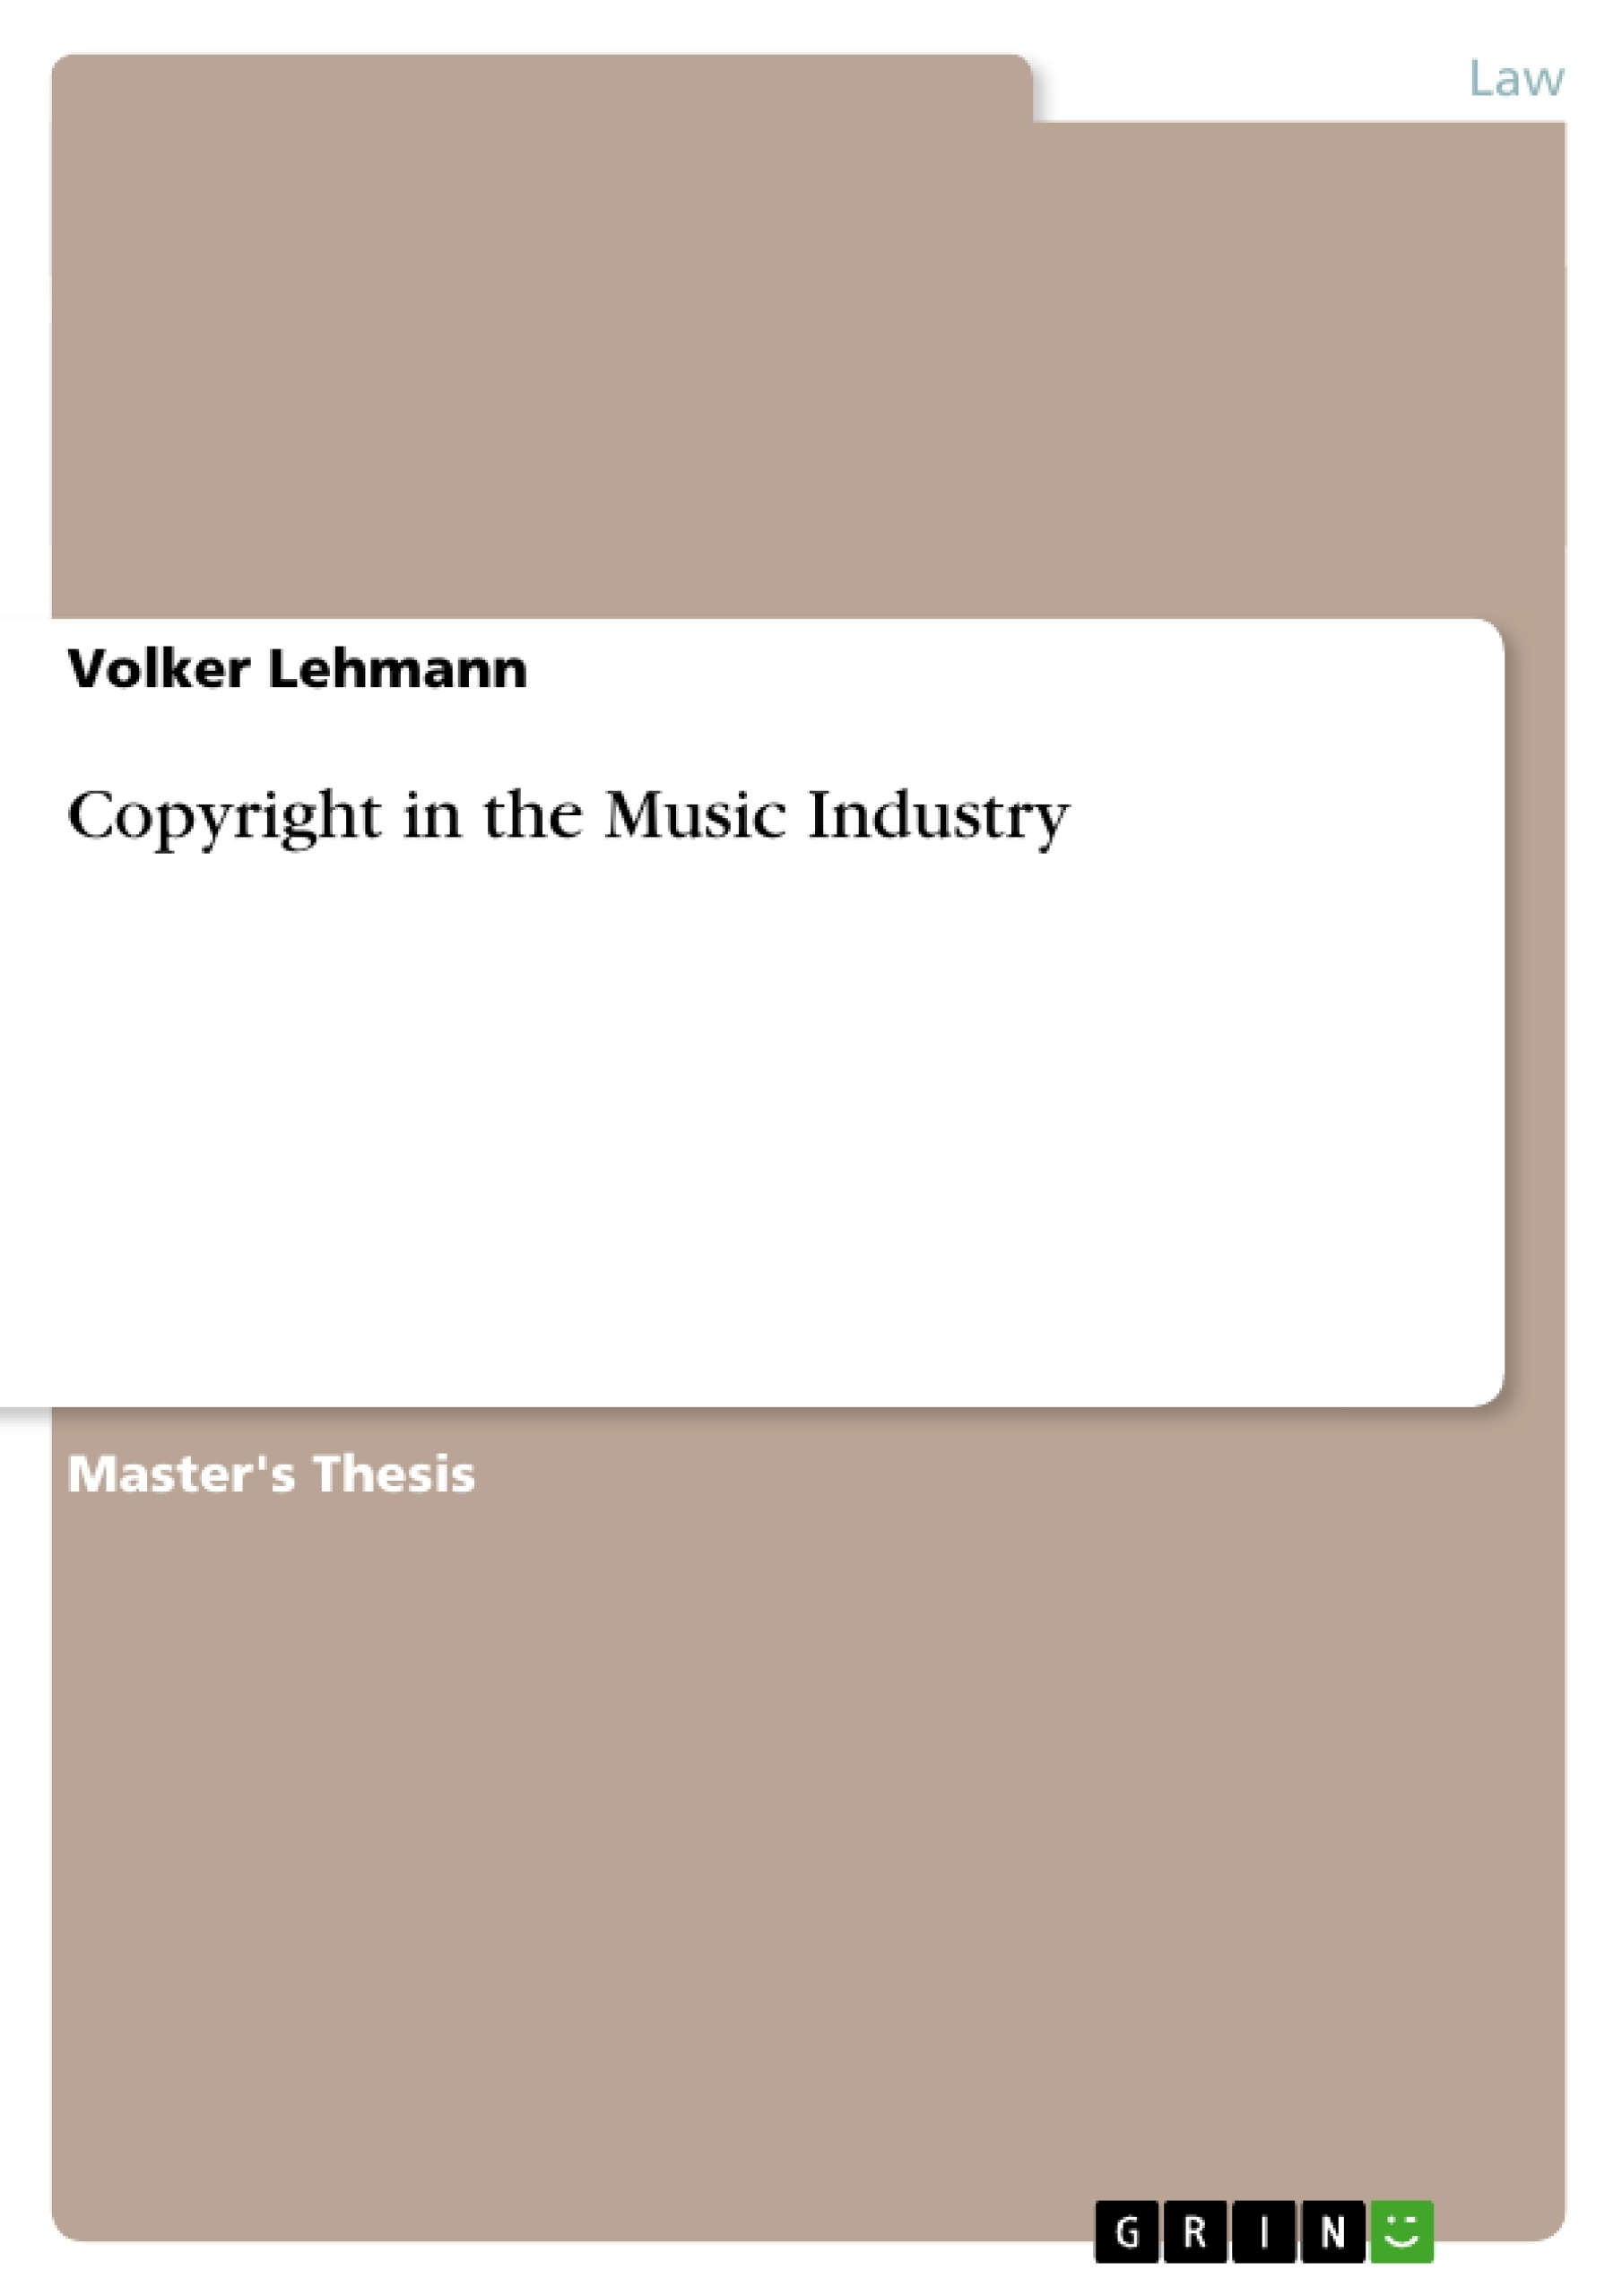 music industry essay thesis Thousands of essays online the most well-known case involving internet piracy and the music industry occurred in the year 2000 when a group of major.